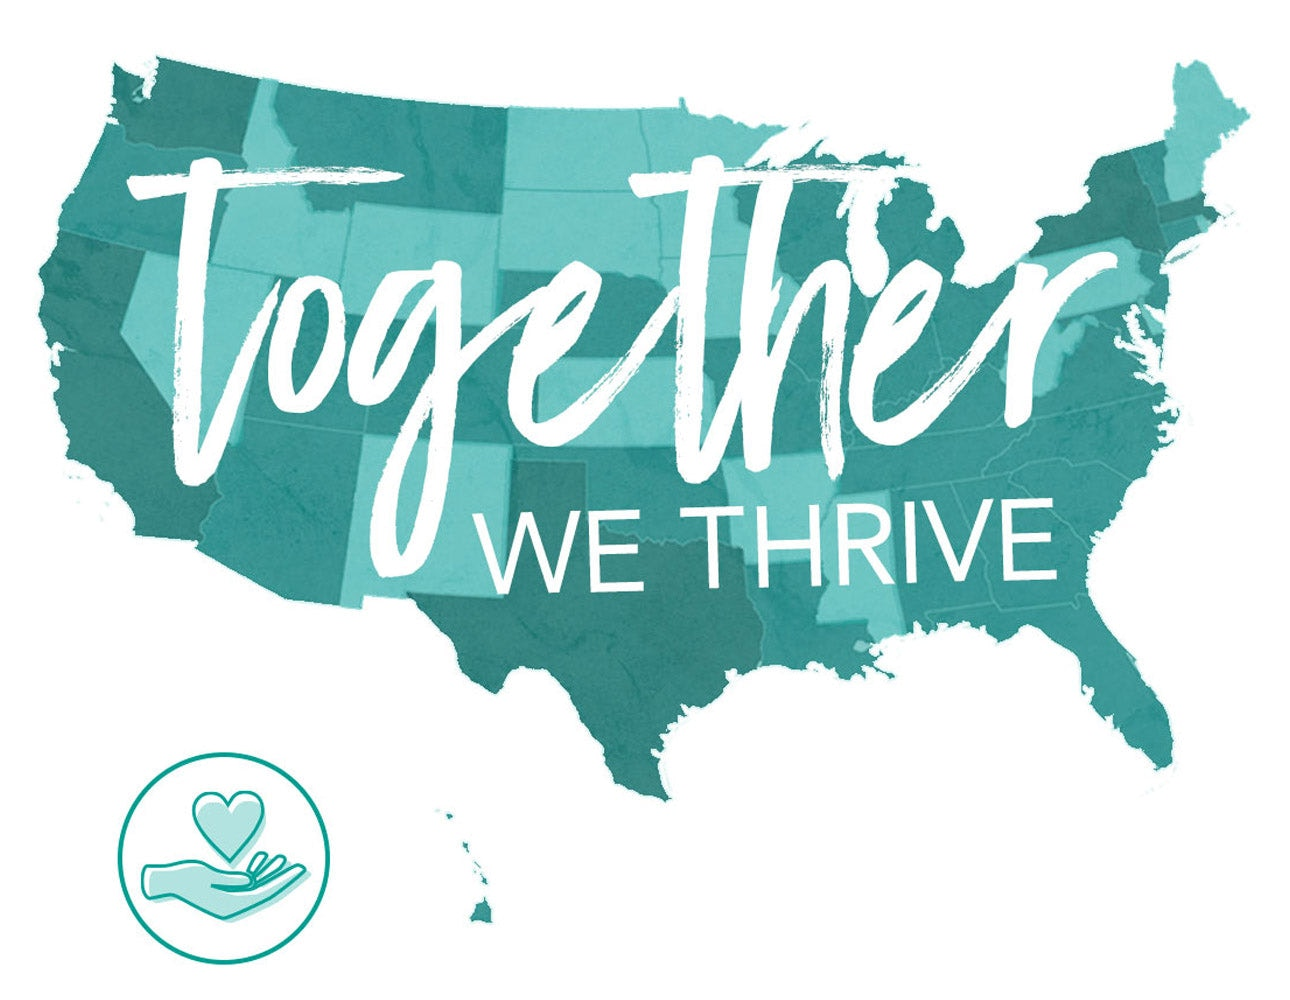 Thrive Causemetics partners with over 50 partner organizations